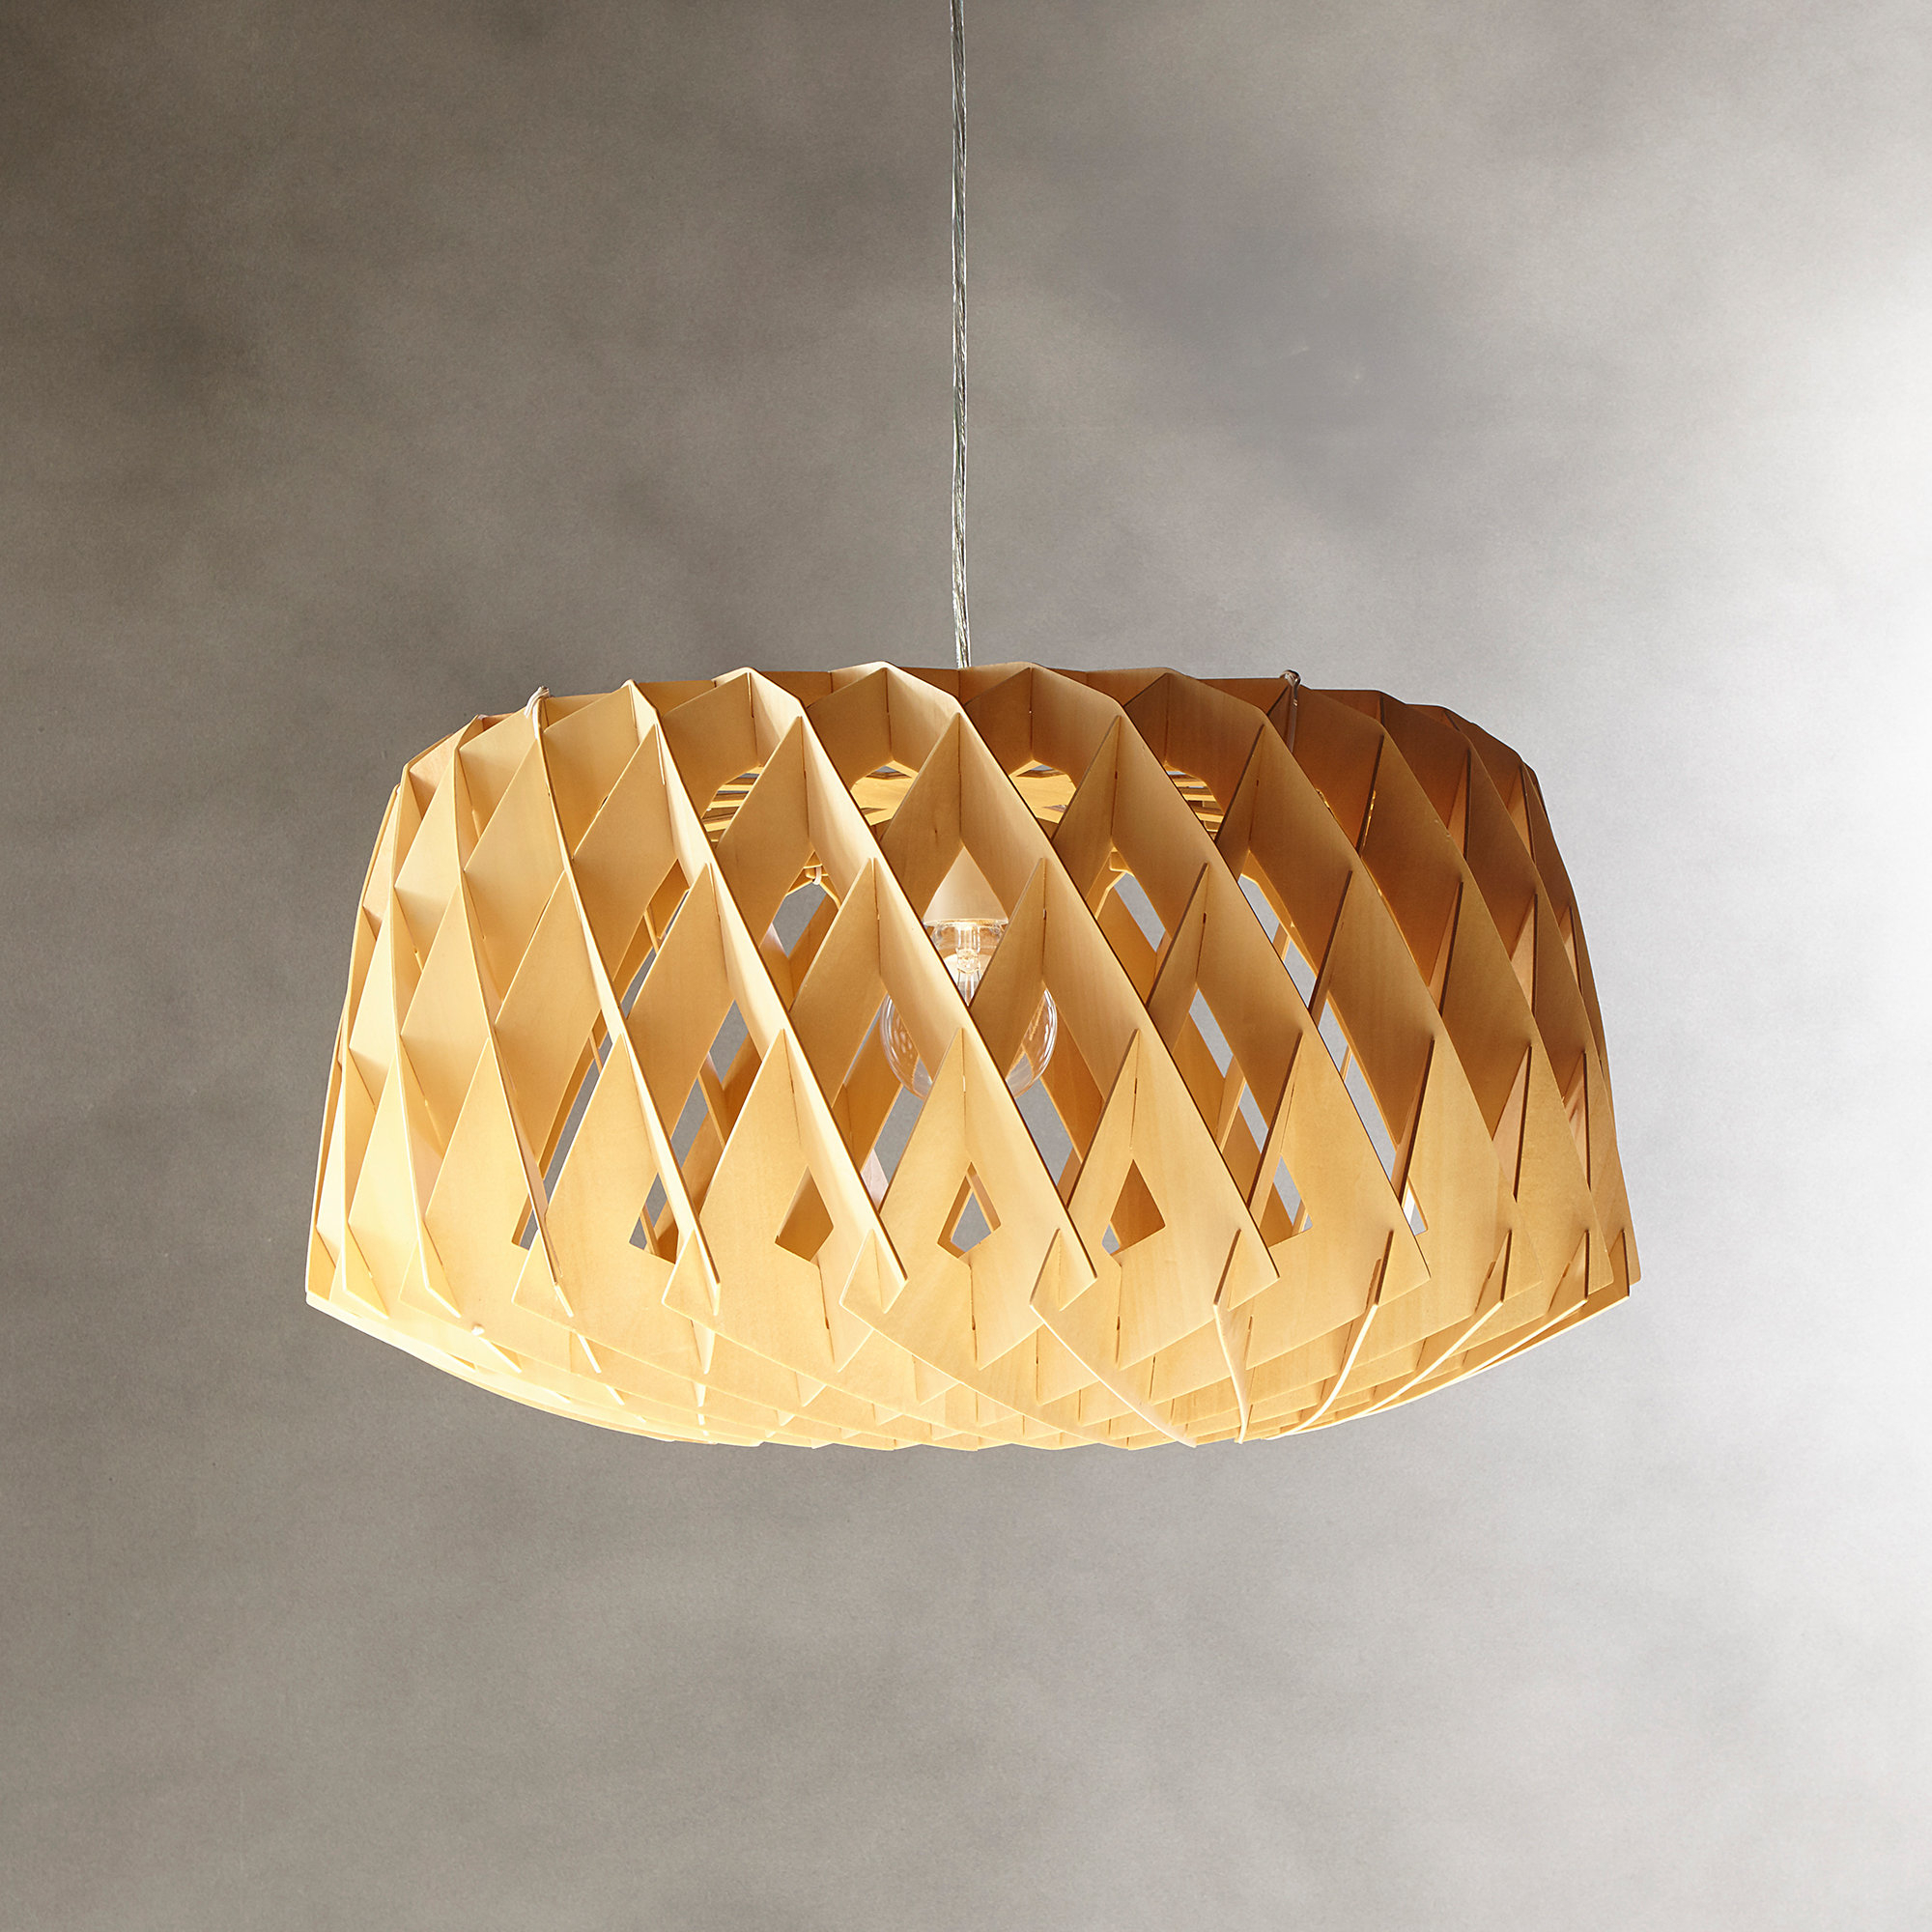 Brayden Studio Melora 1-Light Single Geometric Pendant with regard to Melora 1-Light Single Geometric Pendants (Image 5 of 30)